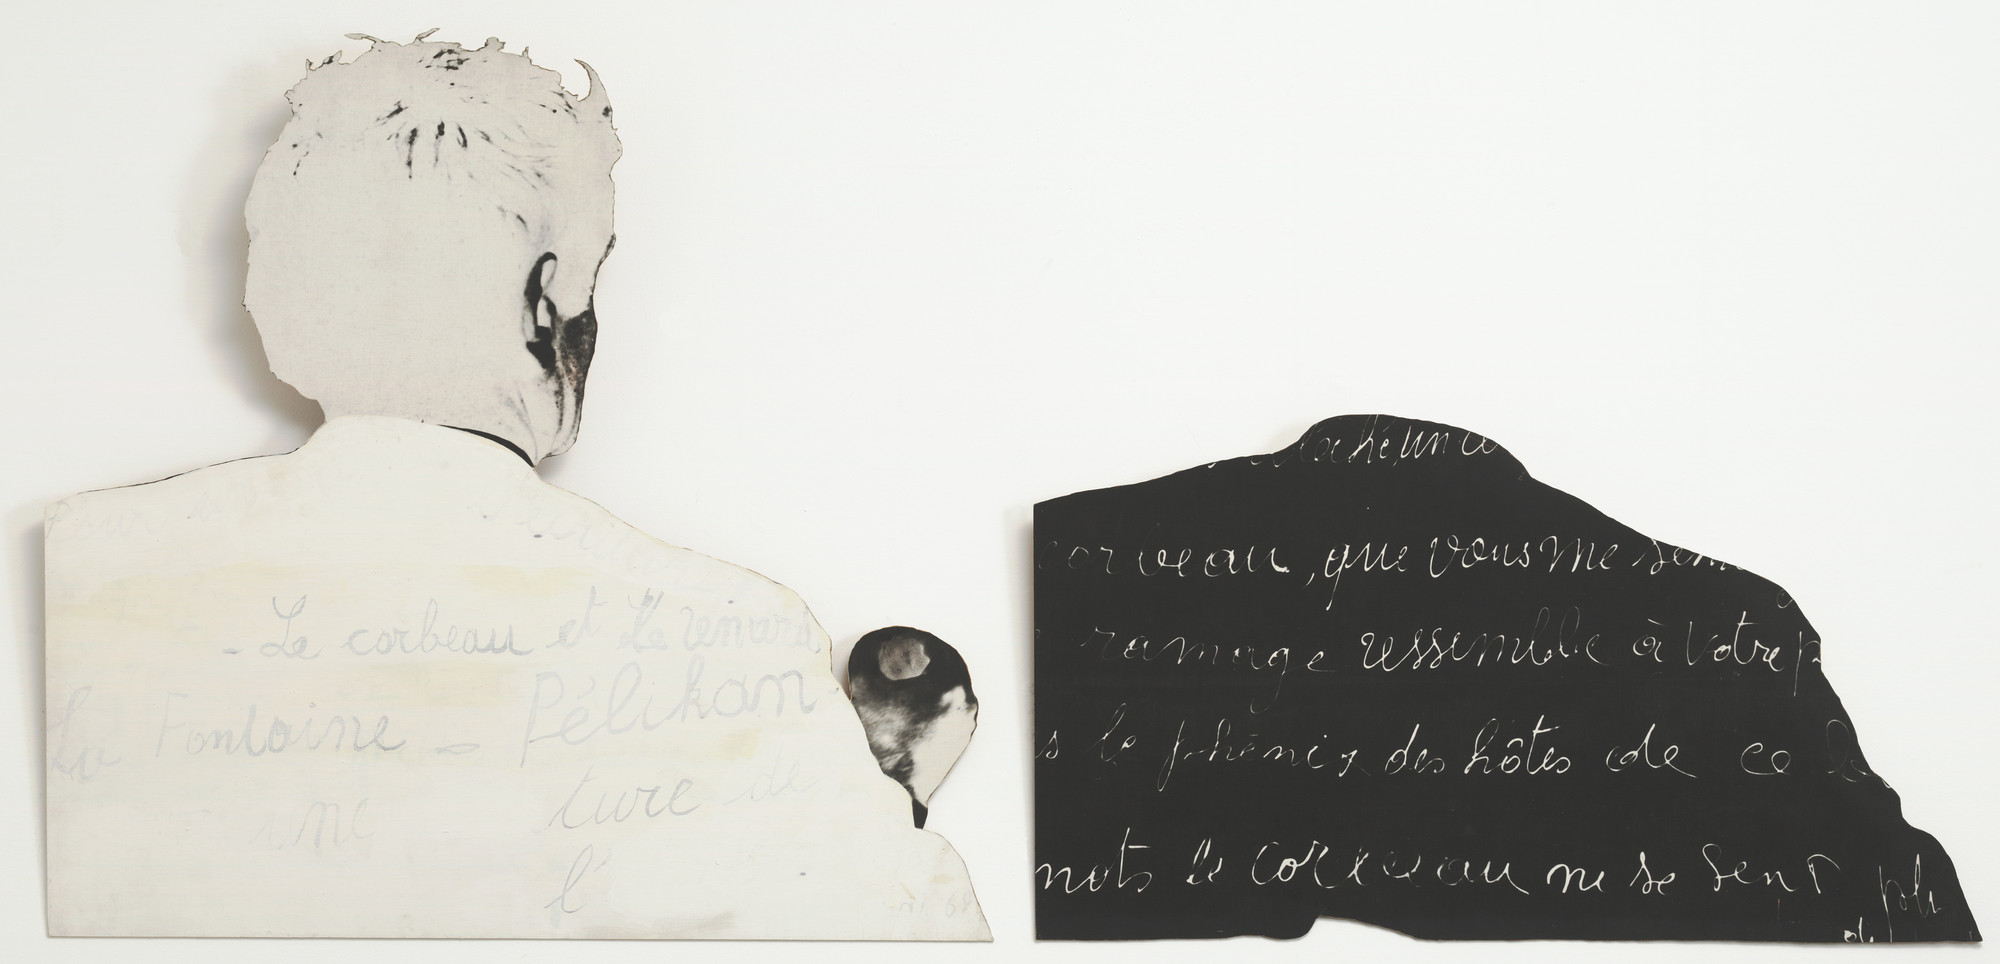 "Marcel Broodthaers. Pour un art de l'écriture. Pour une écriture de l'art (On the art of writing. On the writing of art). 1968. Painted photographic canvas on two cut-out composition boards, left: 40 5/8 × 42 3/8"" (103.2 × 107.6 cm); right: 23 1/2 × 42 1/2"" (59.7 × 107.9 cm). The Museum of Modern Art, New York. Gift of Raymond J. Learsy and Gabriella De Ferrari, 1991. © 2015 Estate of Marcel Broodthaers/Artists Rights Society (ARS), New York/SABAM, Brussels"